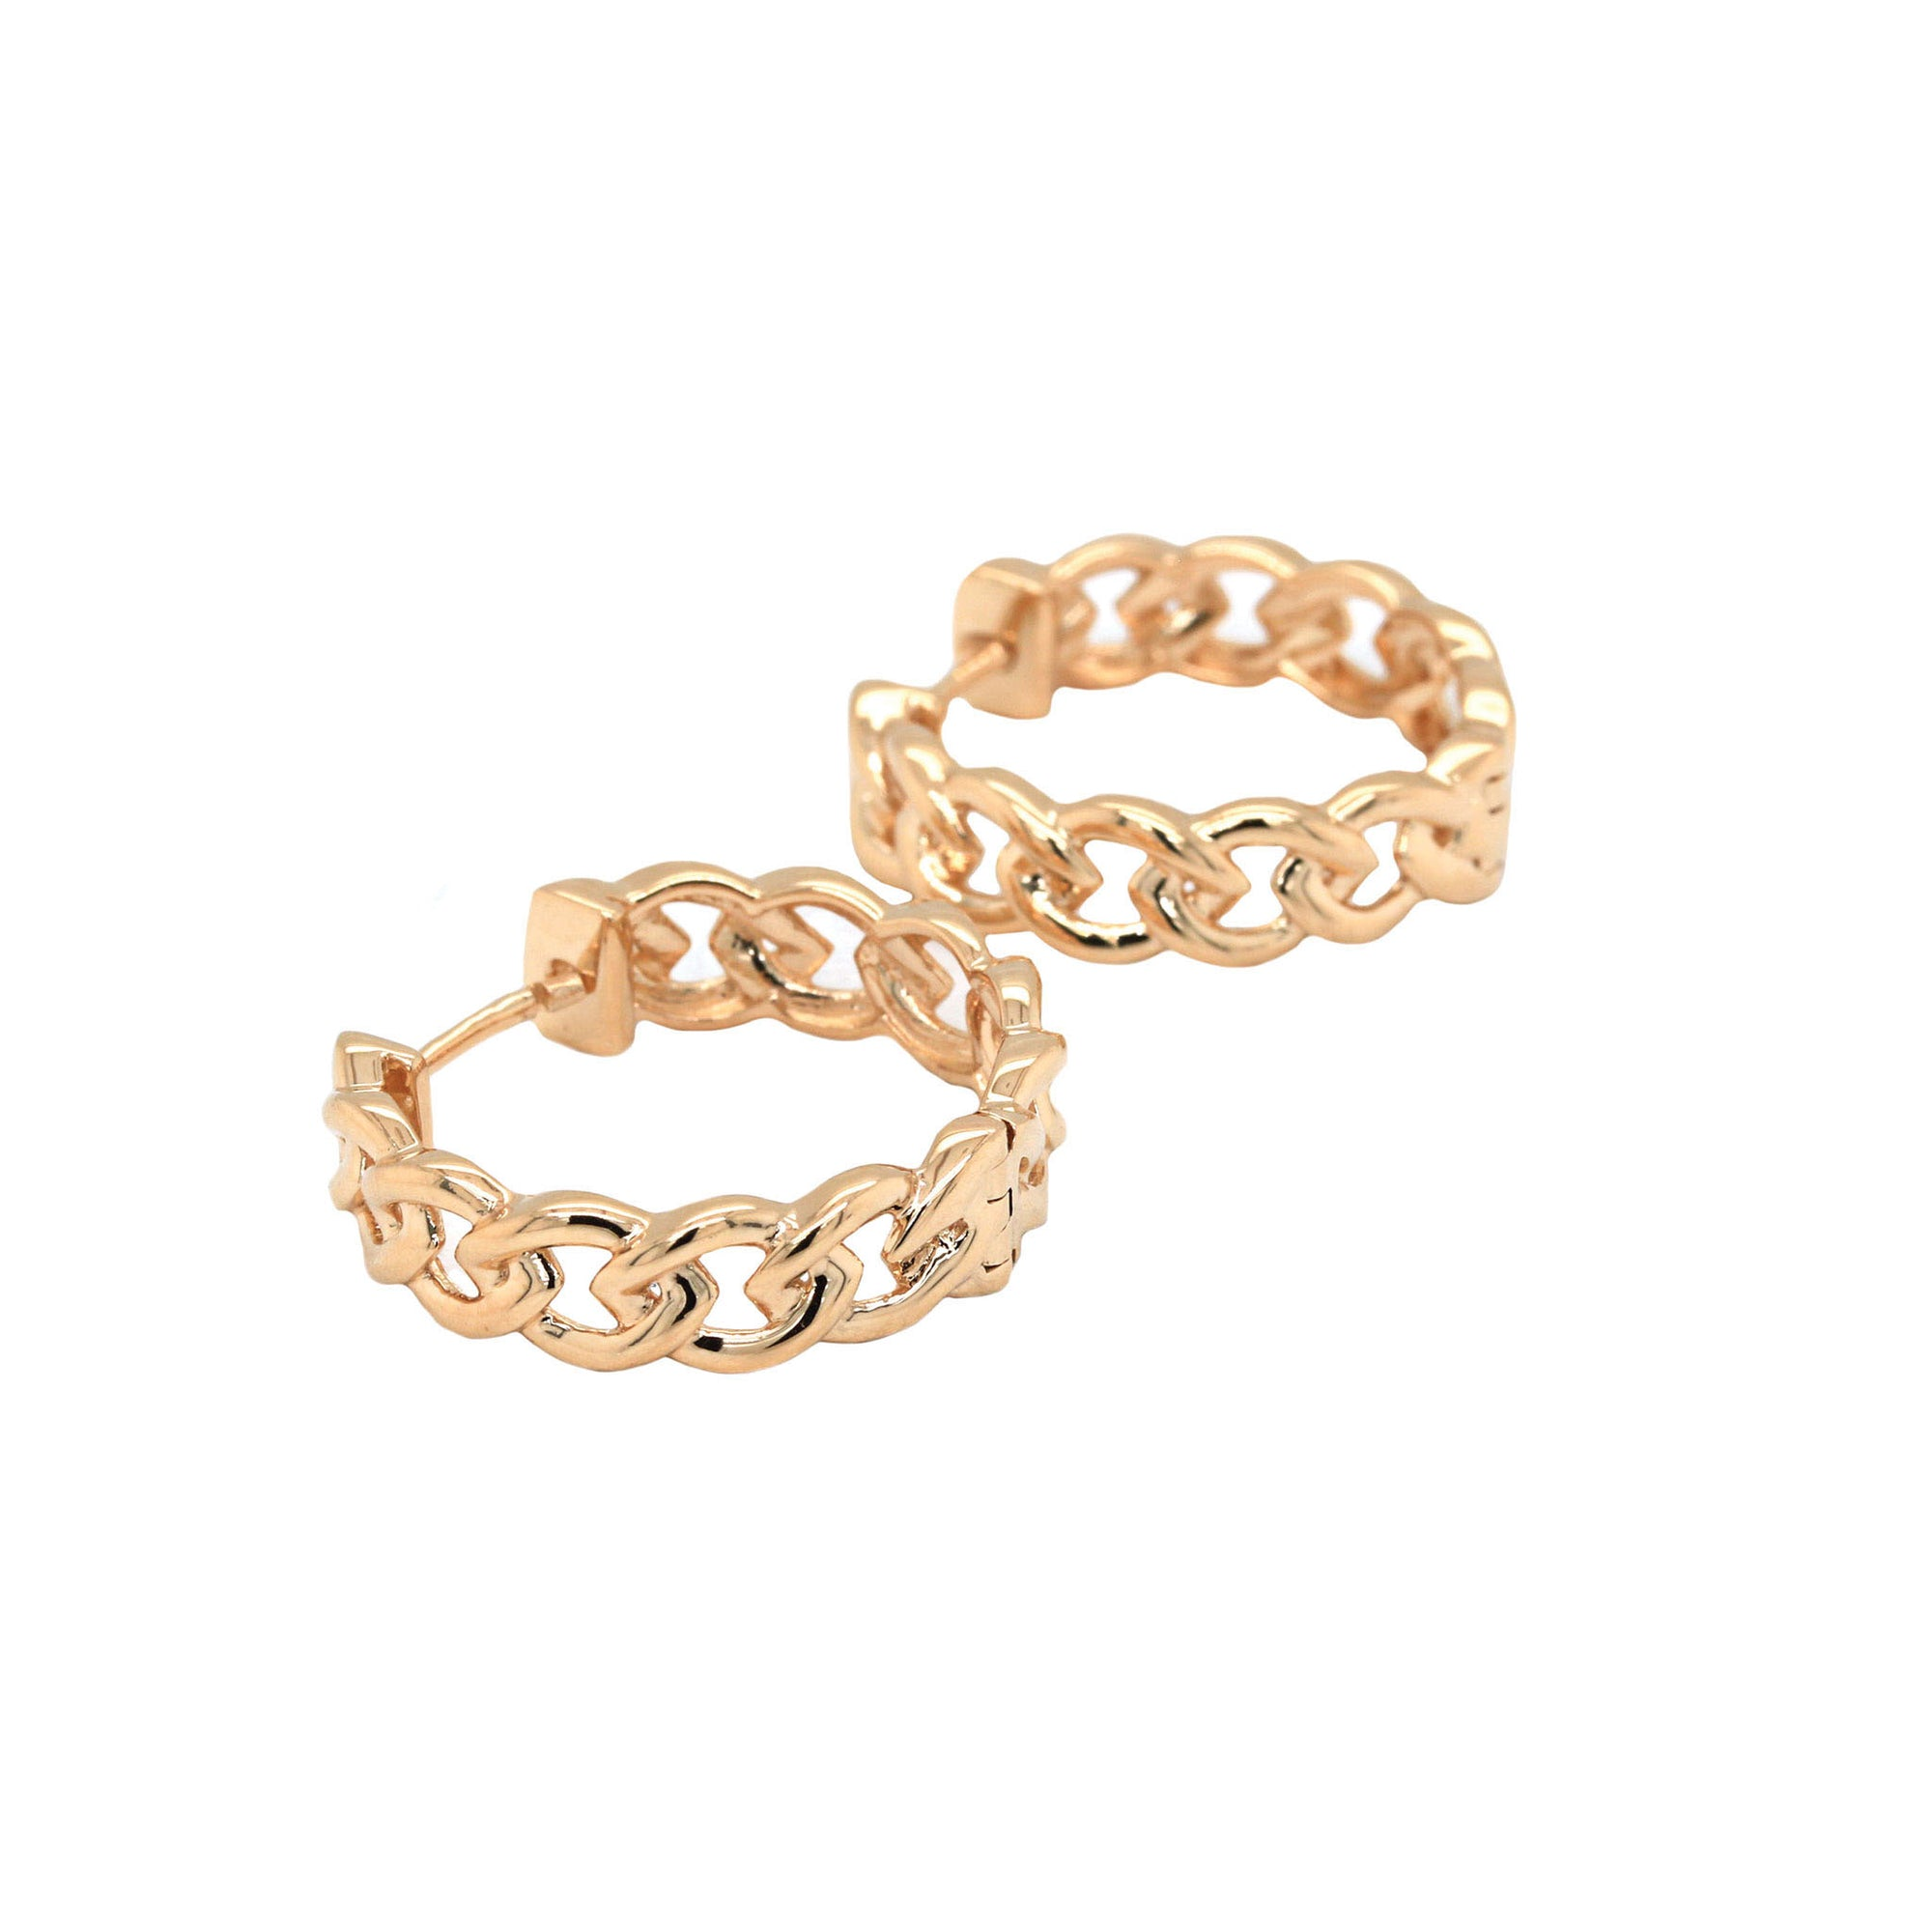 Chain Link Gold Hoop Earrings